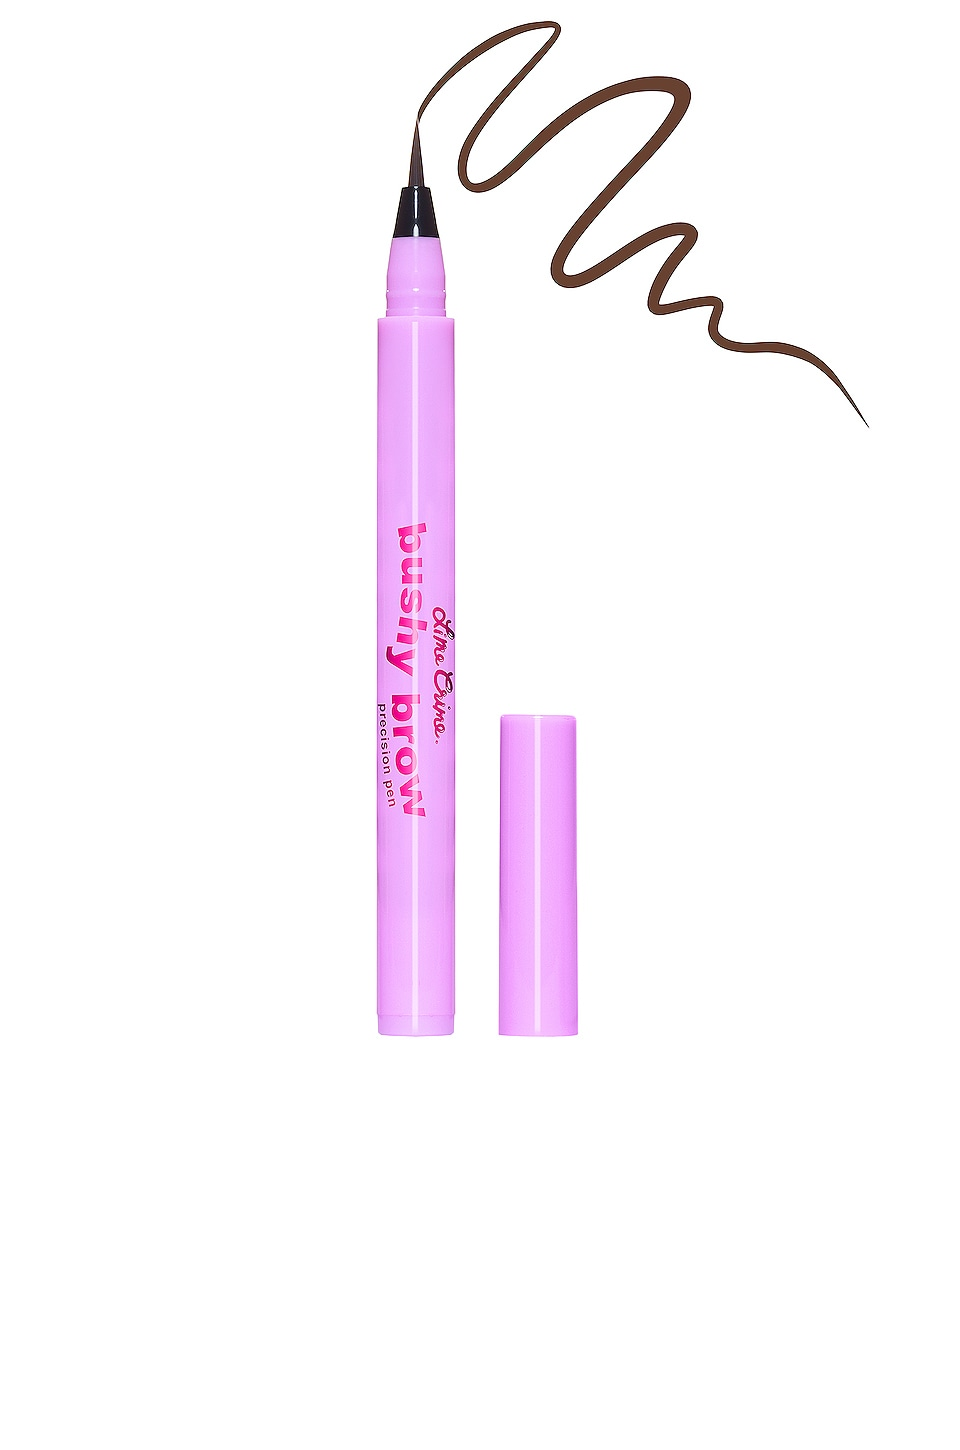 Lime Crime Bushy Brow Precision Pen in Brownie